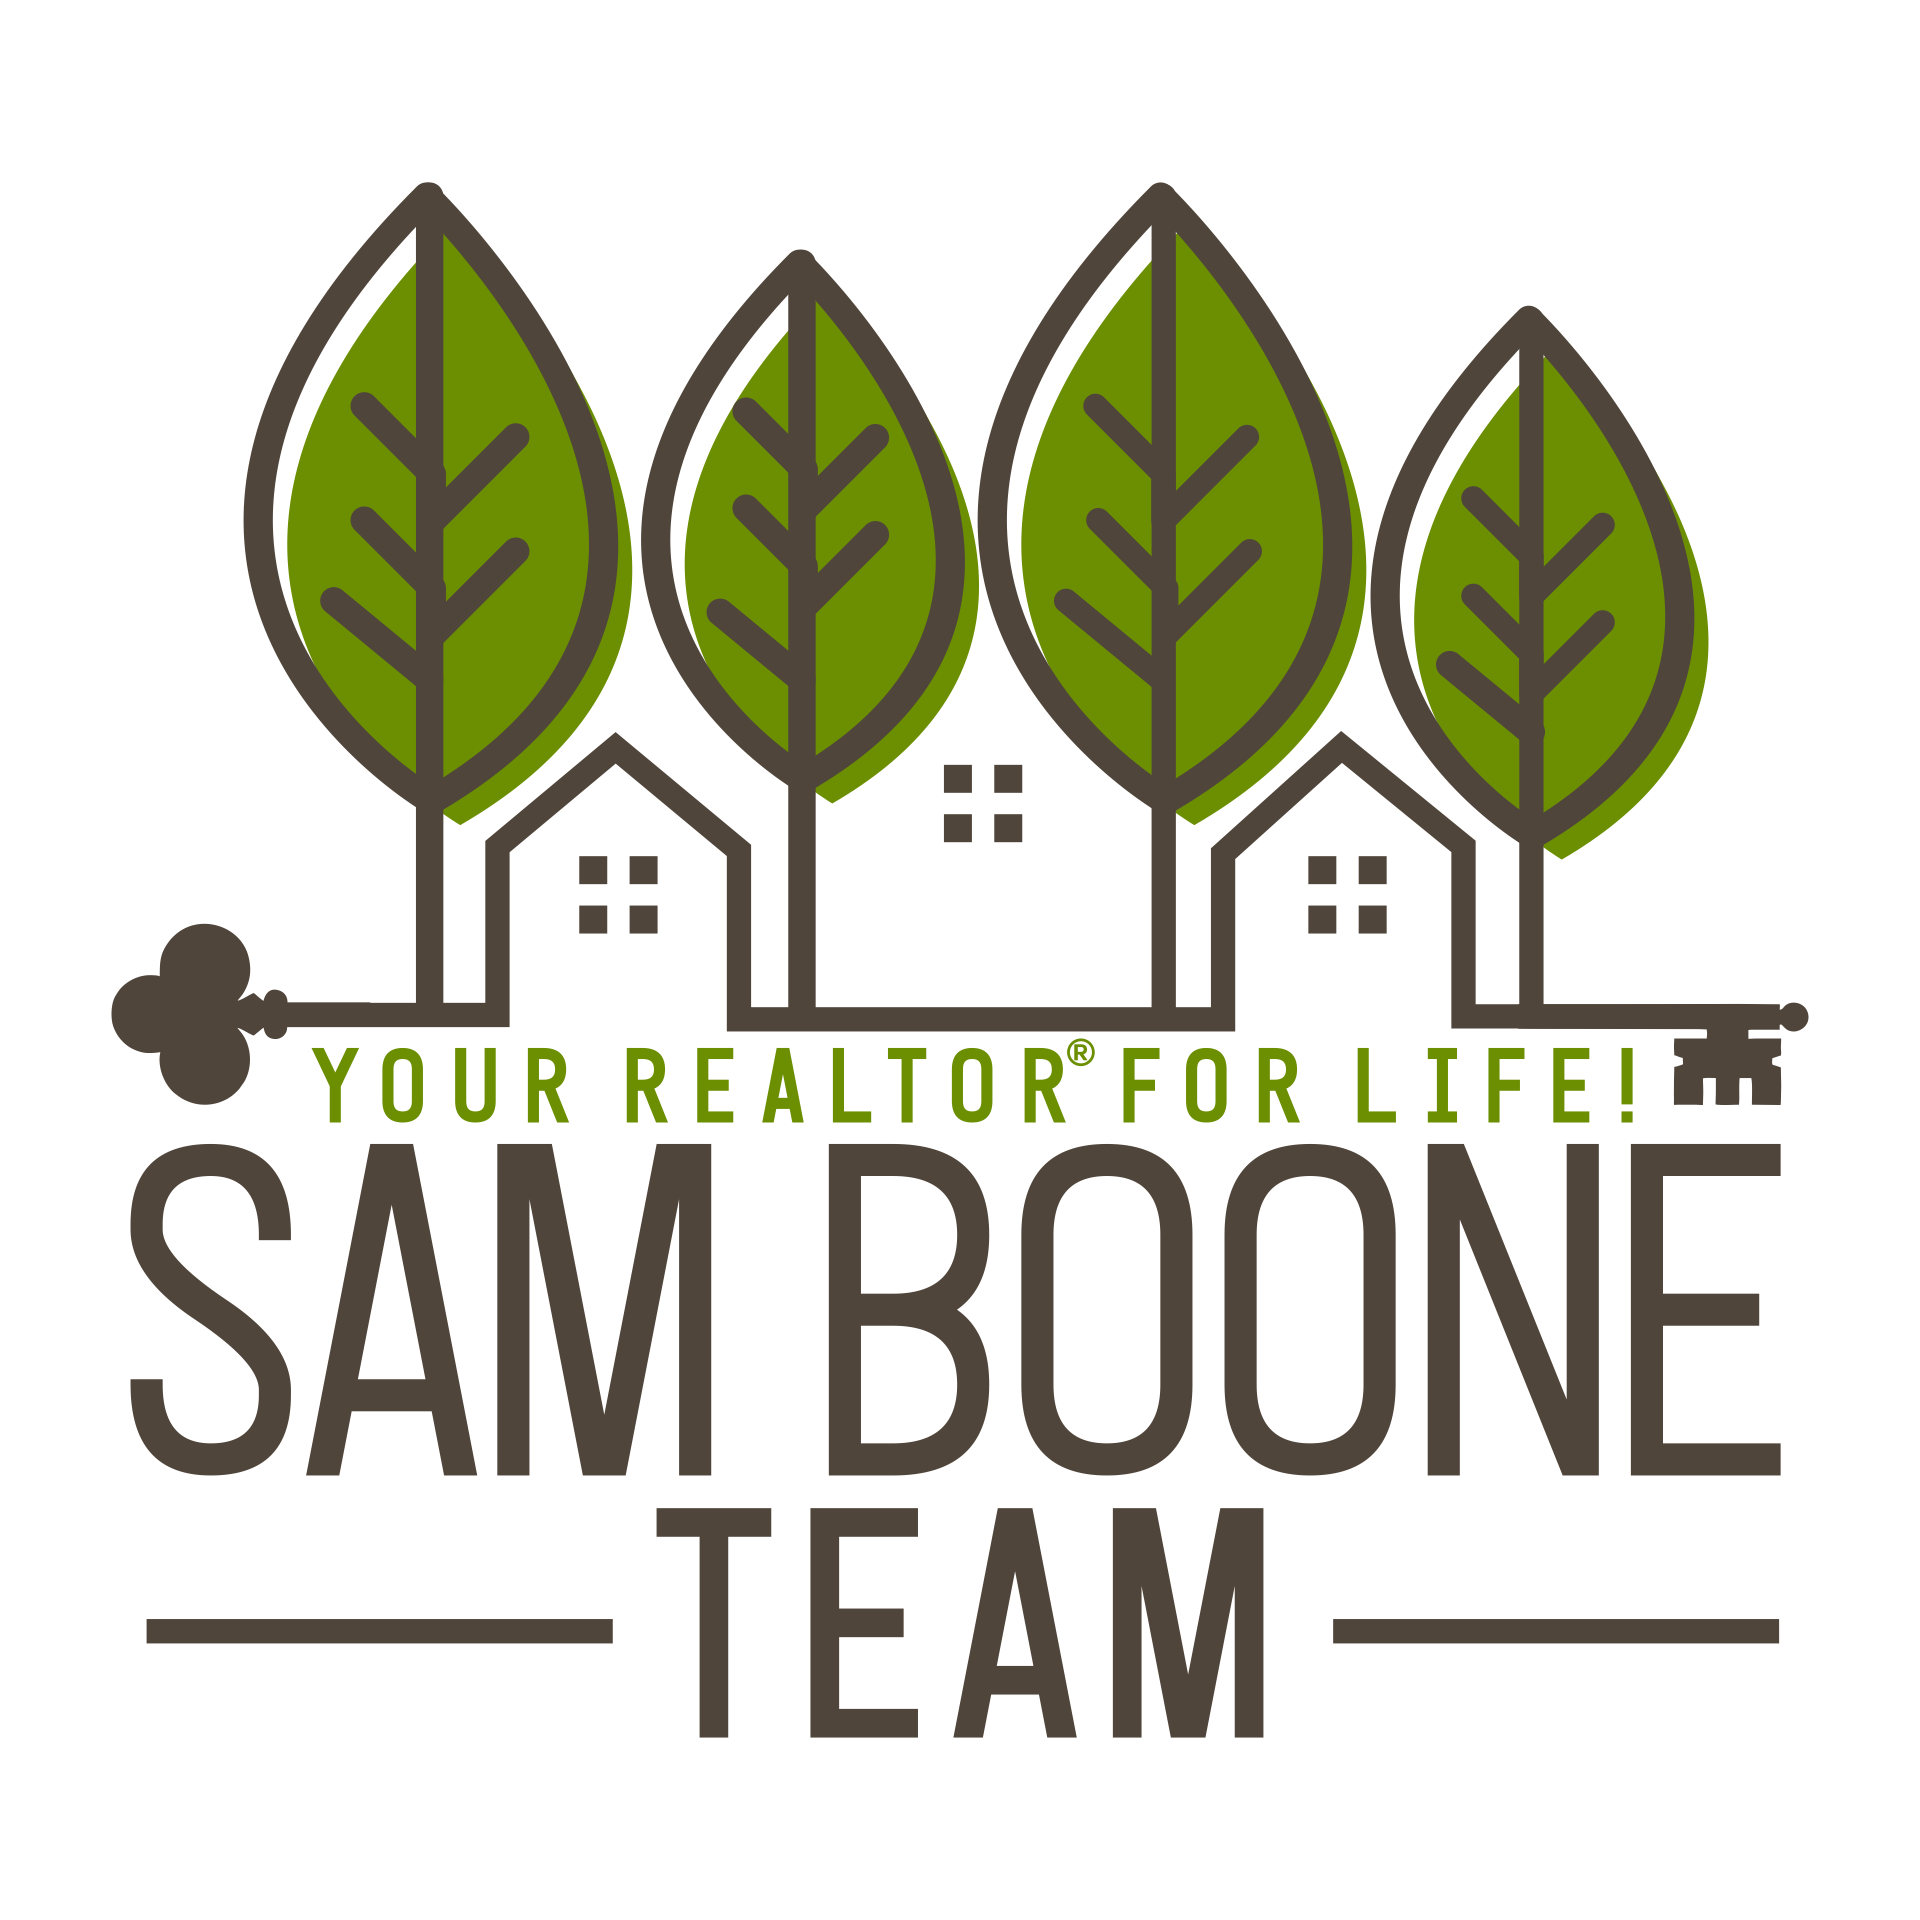 Sam Boone Team logo